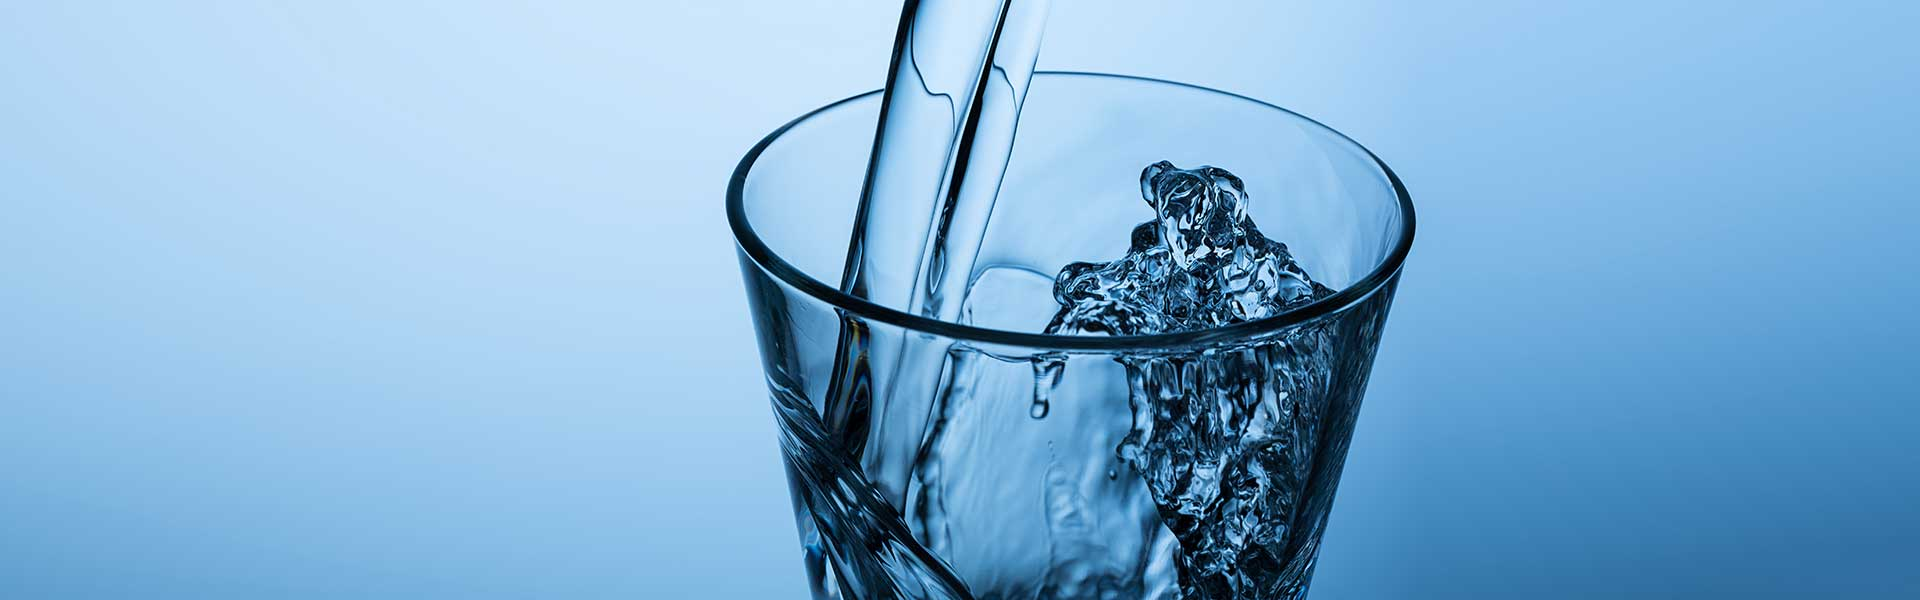 Culligan - Your Water Treatment Company